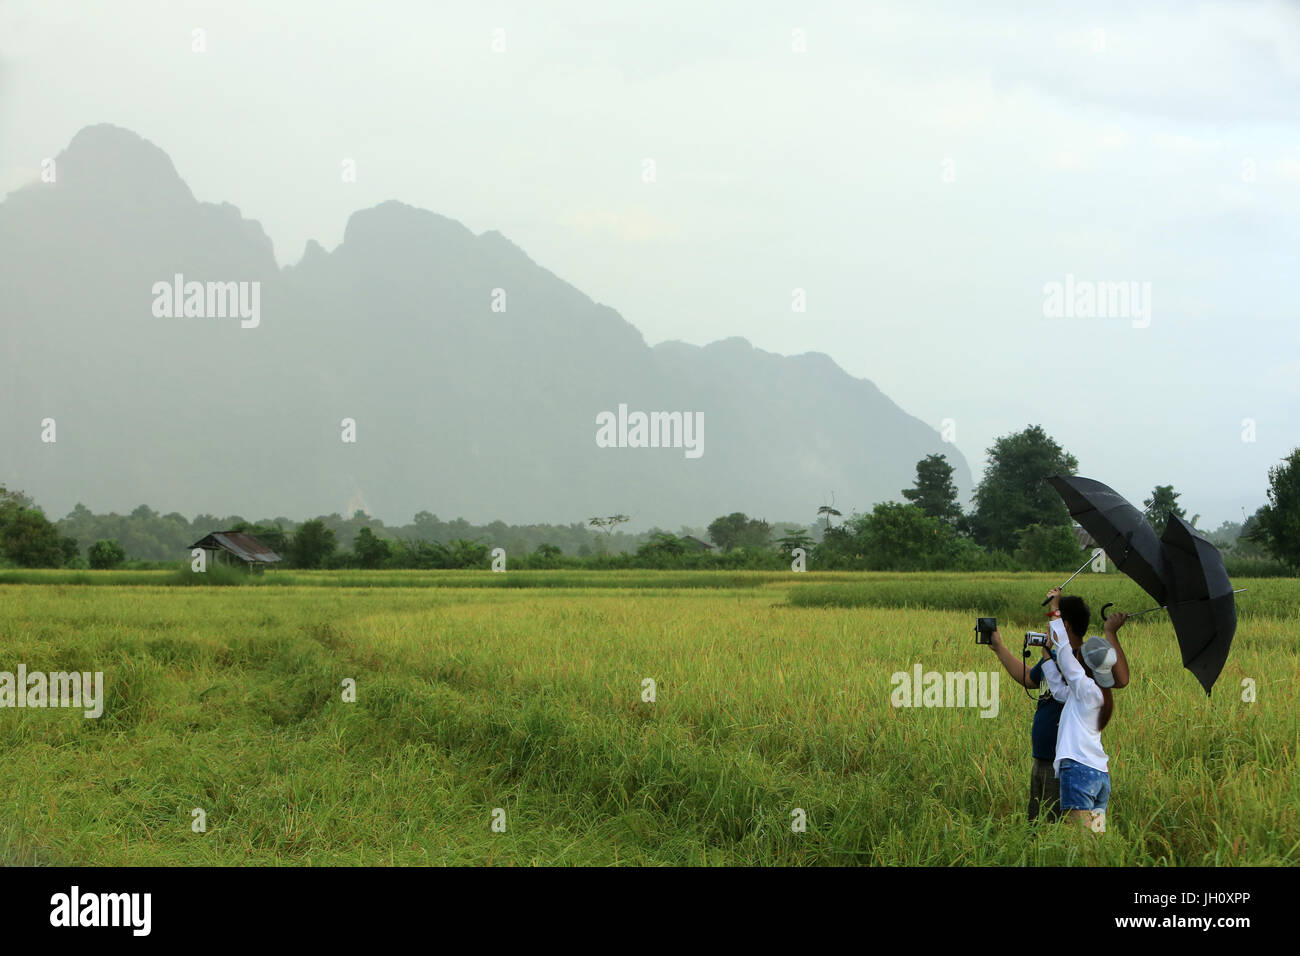 Tourists taken pictures in rice fields. Mountainsides in rural Laos near the town of Vang Vieng. Laos. - Stock Image